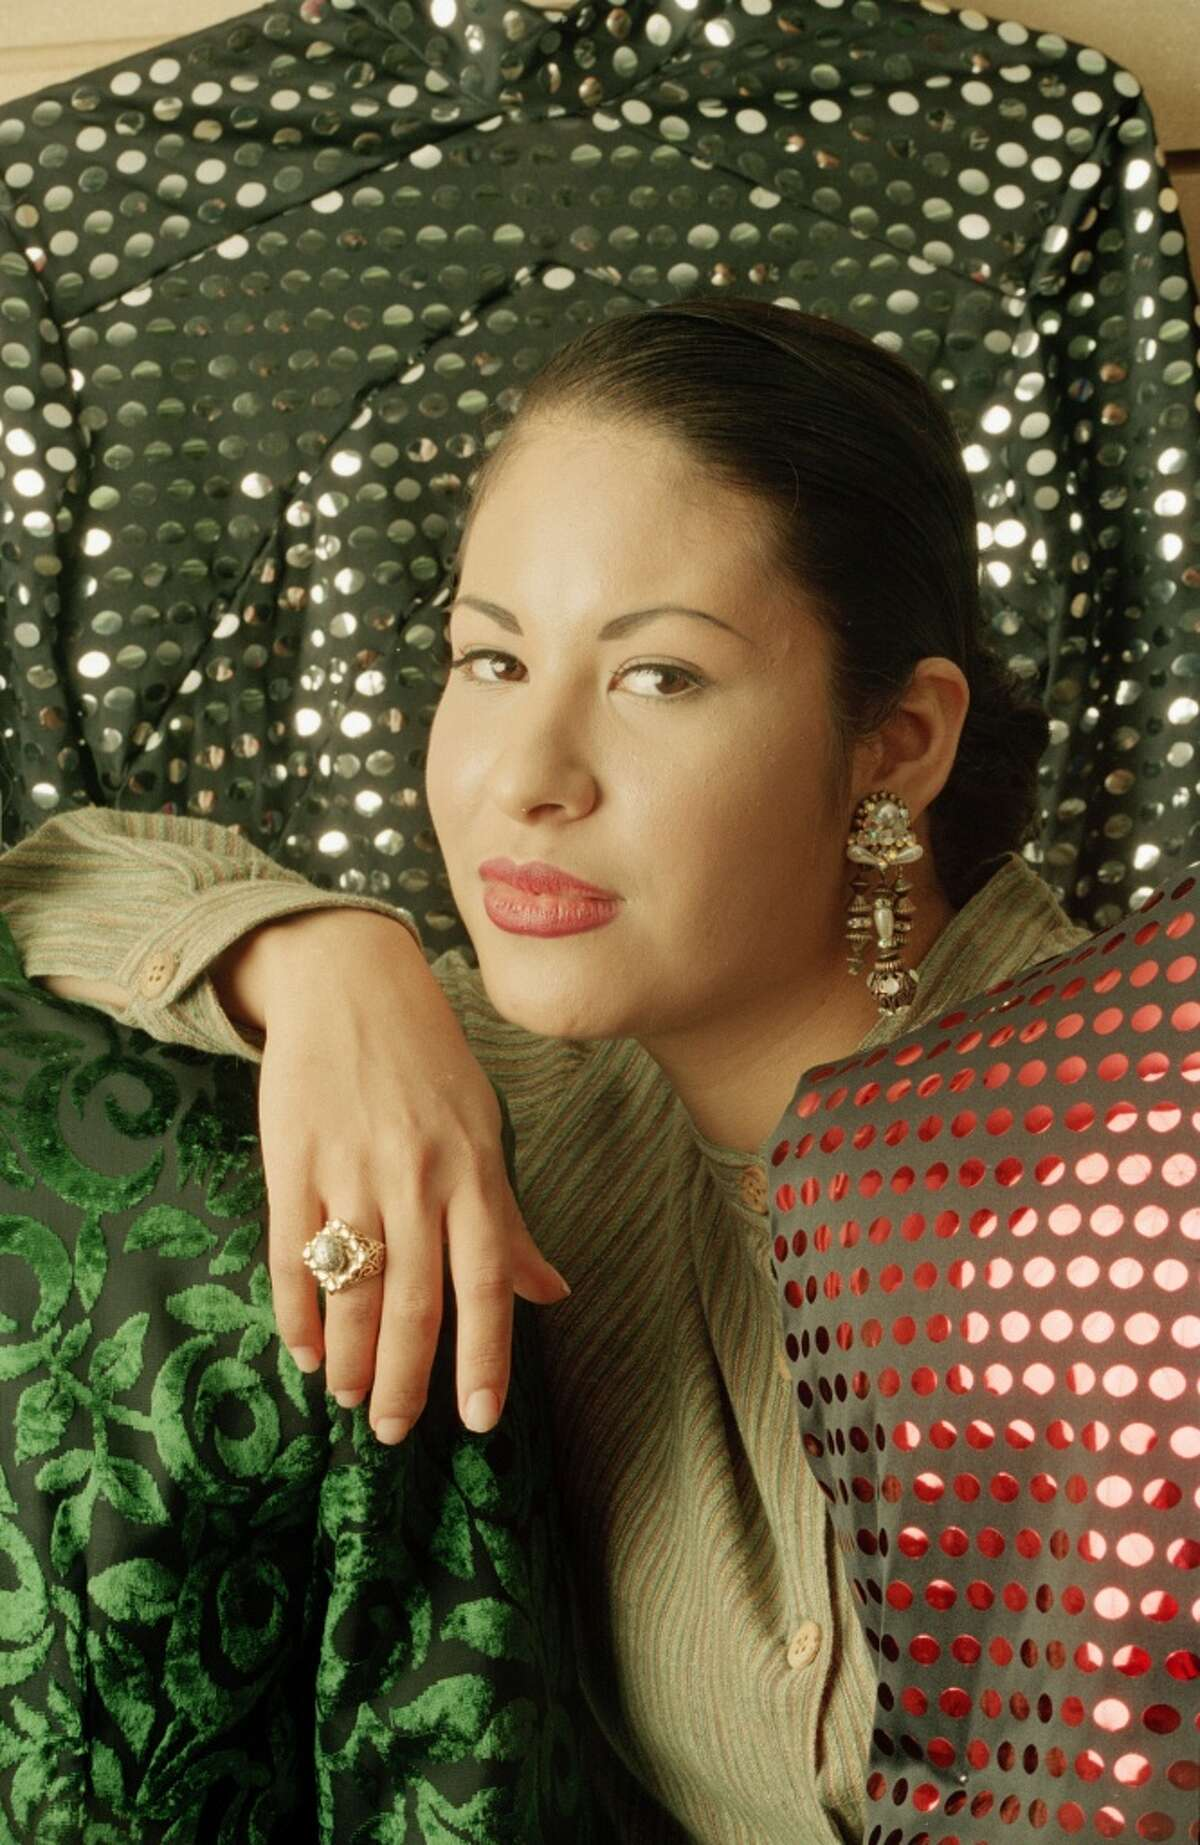 20 years after her death, Tejano icon Selena Quintanilla Perez remains an iconic figure for many young artists in Texas.